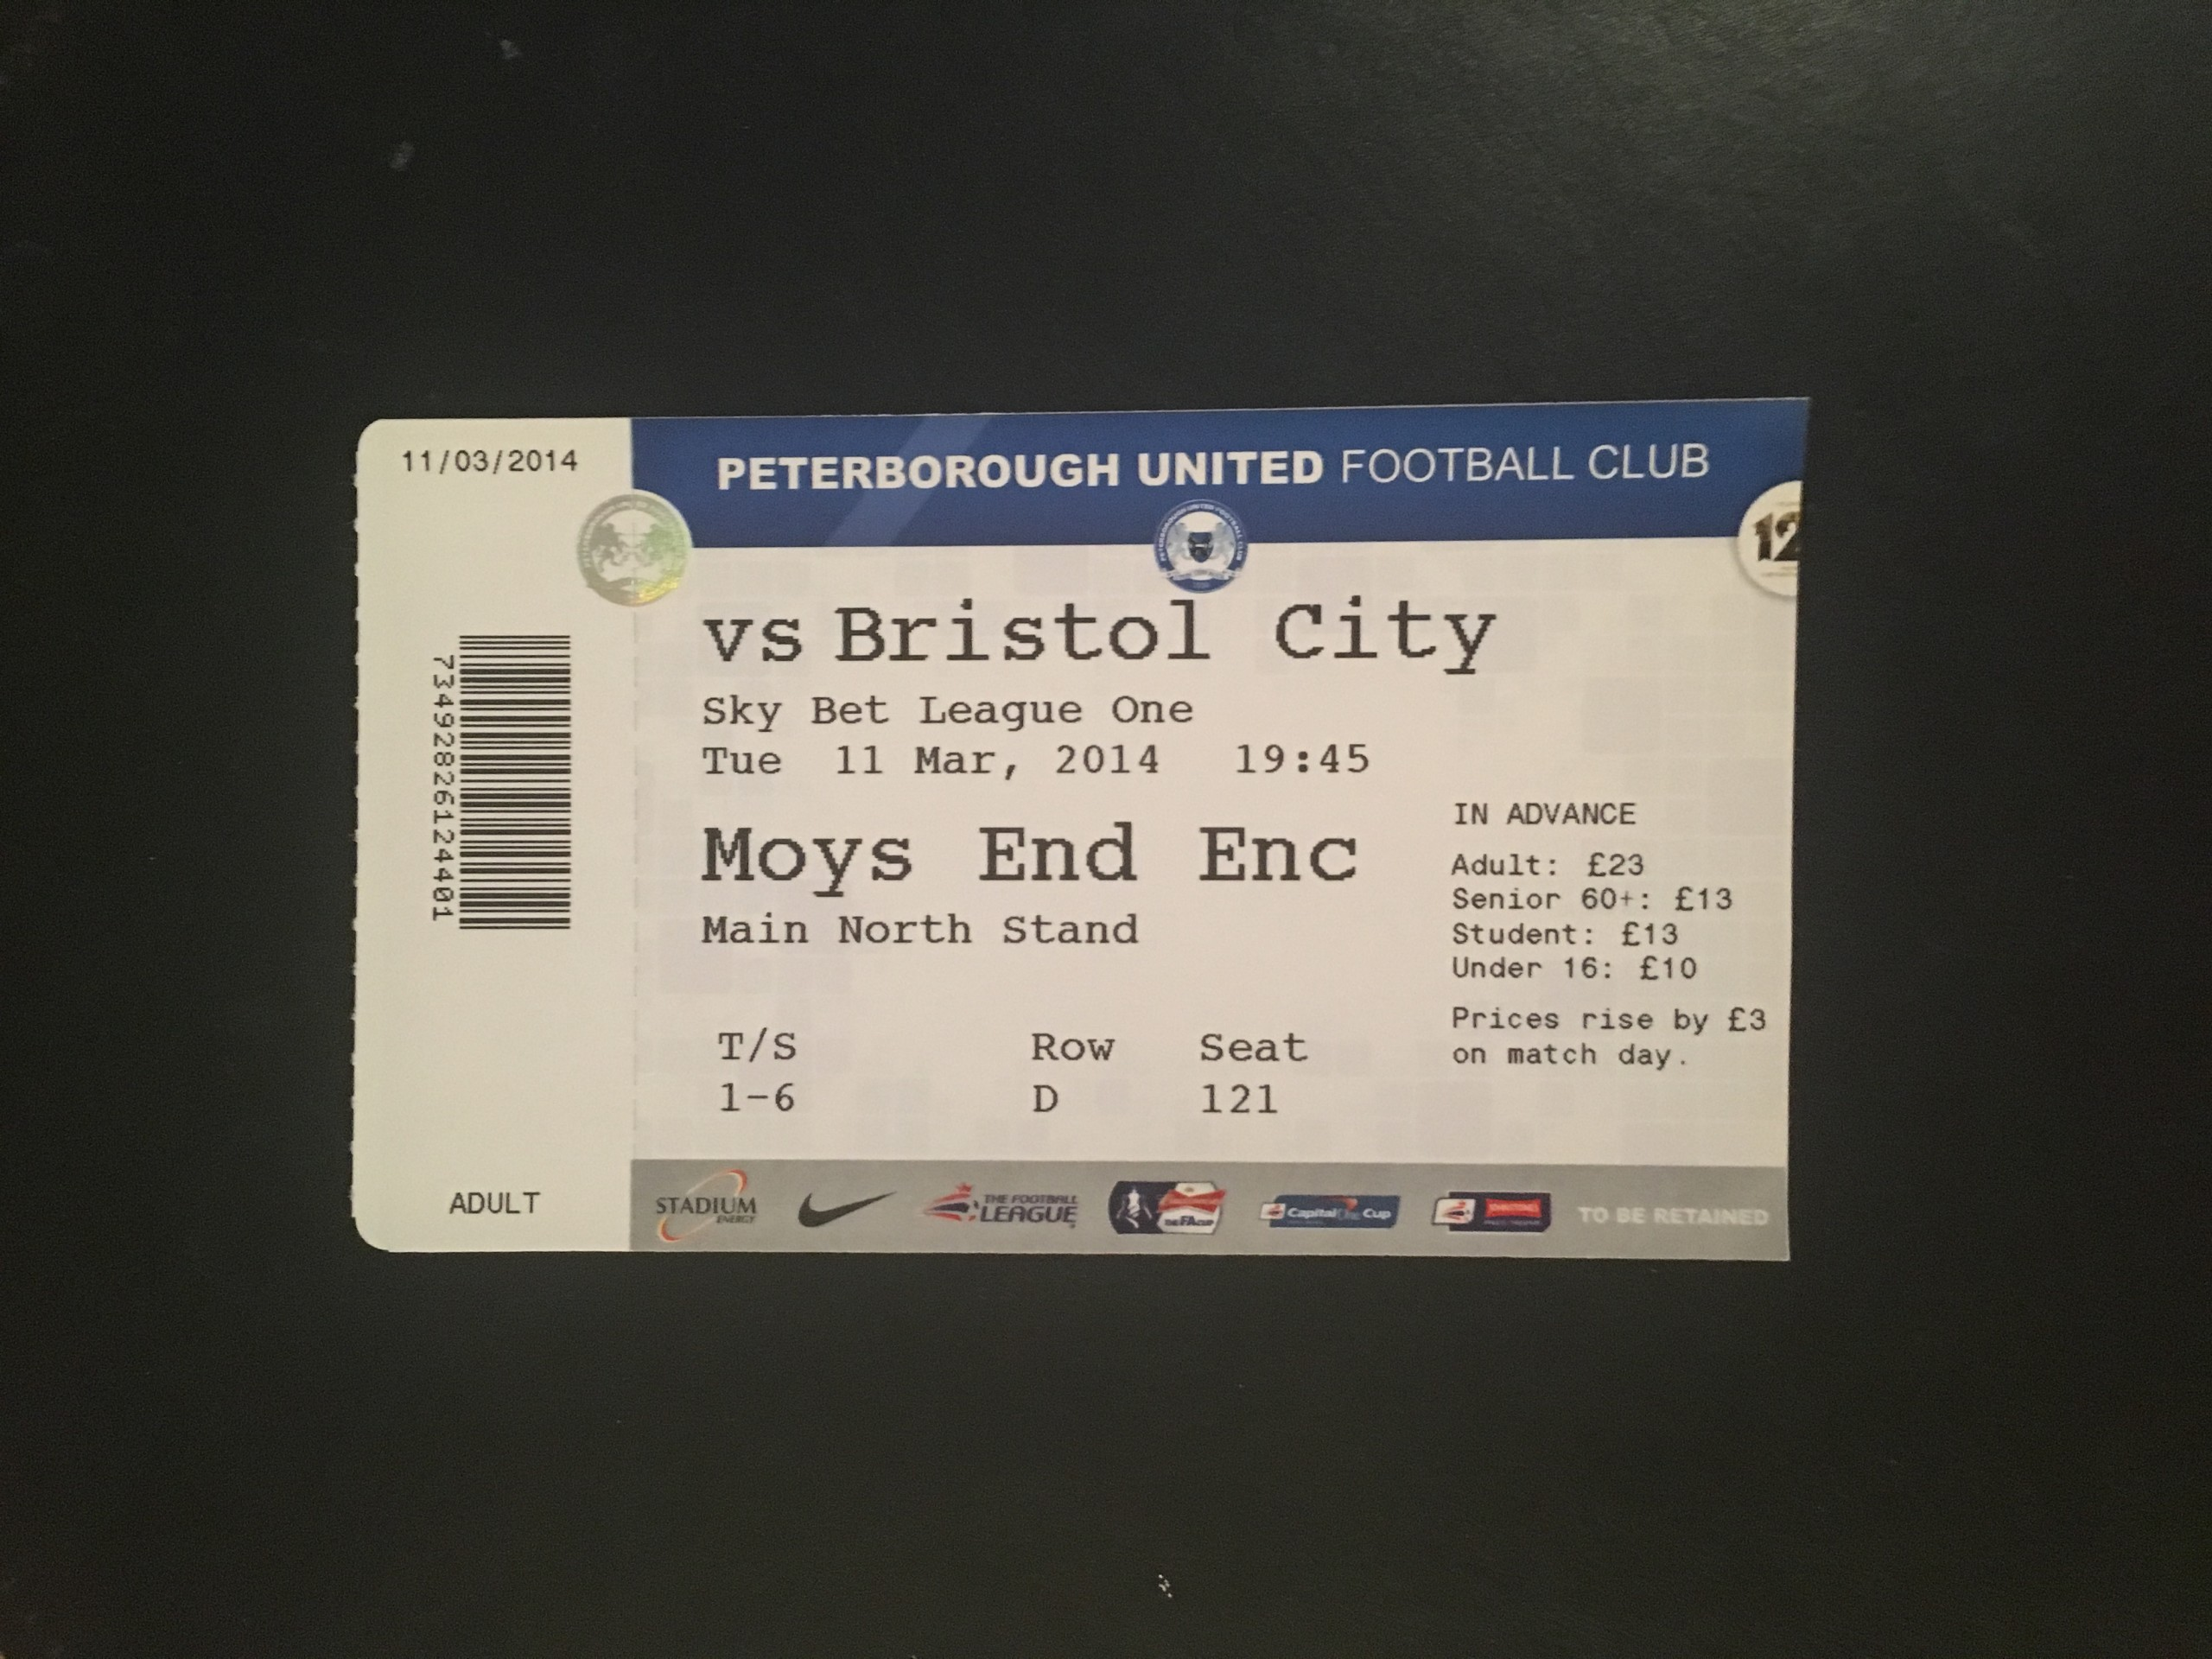 Peterborough United v Bristol City 11-03-2014 Ticket